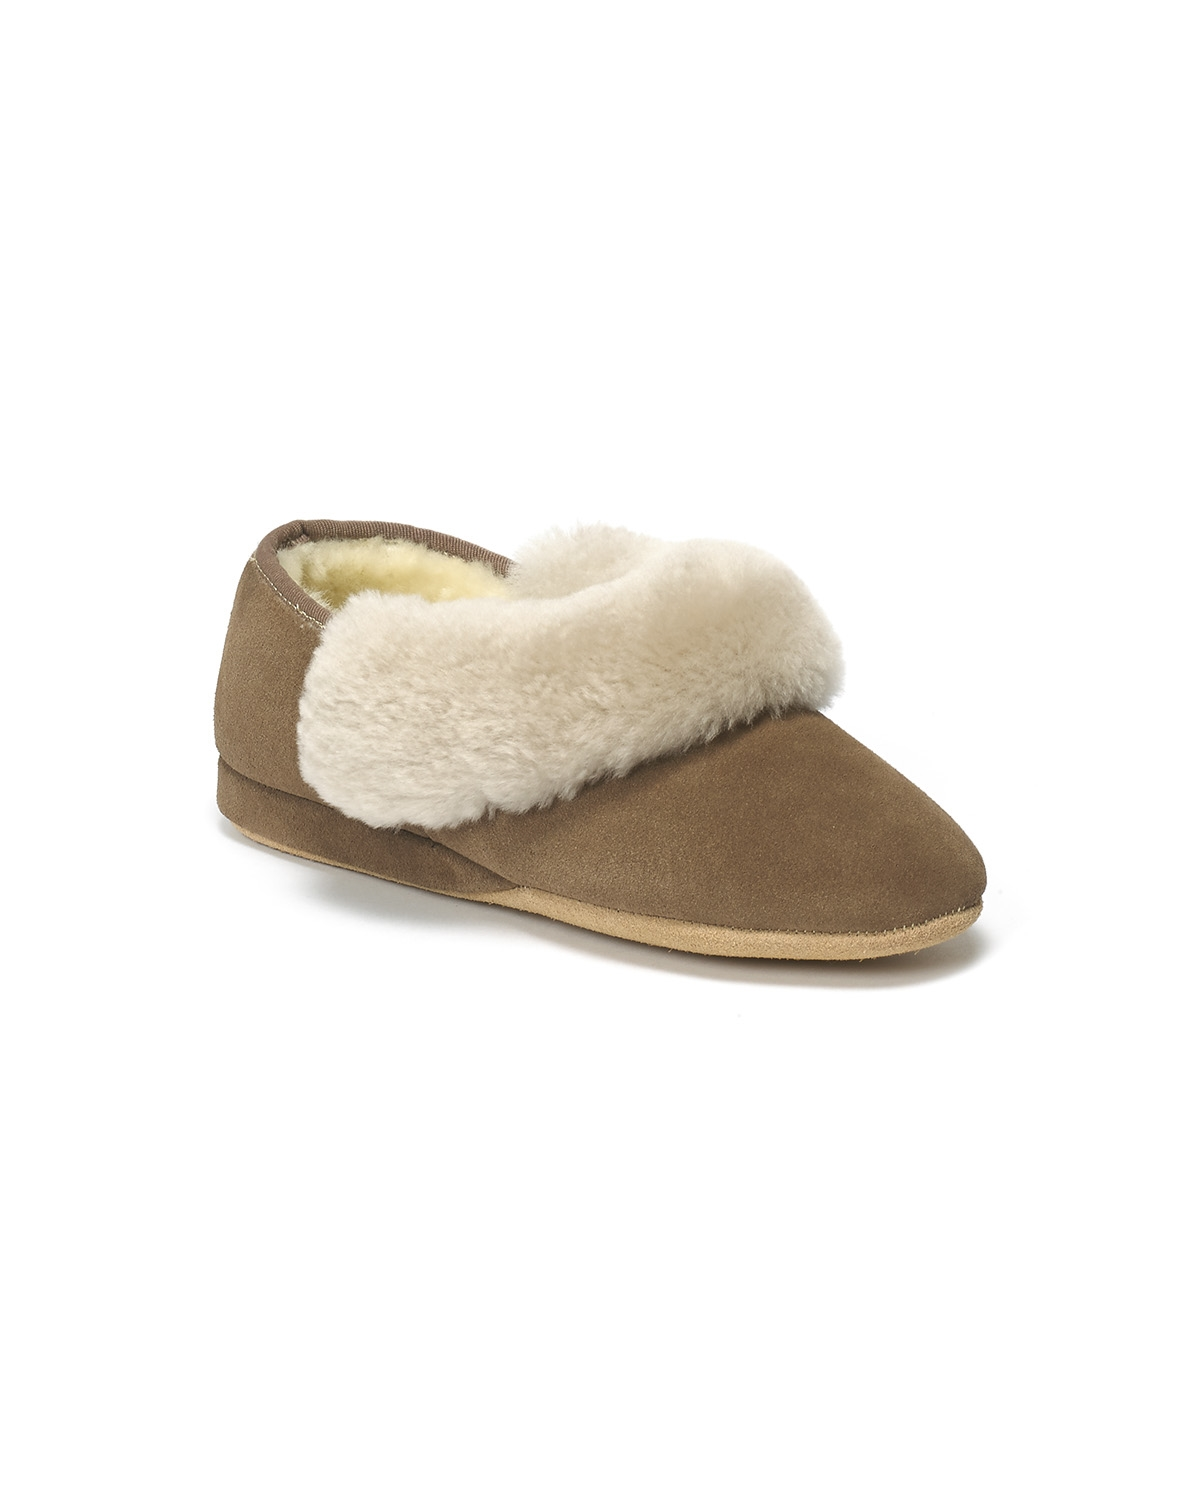 Ladies Strathmore Slipper - Size 9 - Mole